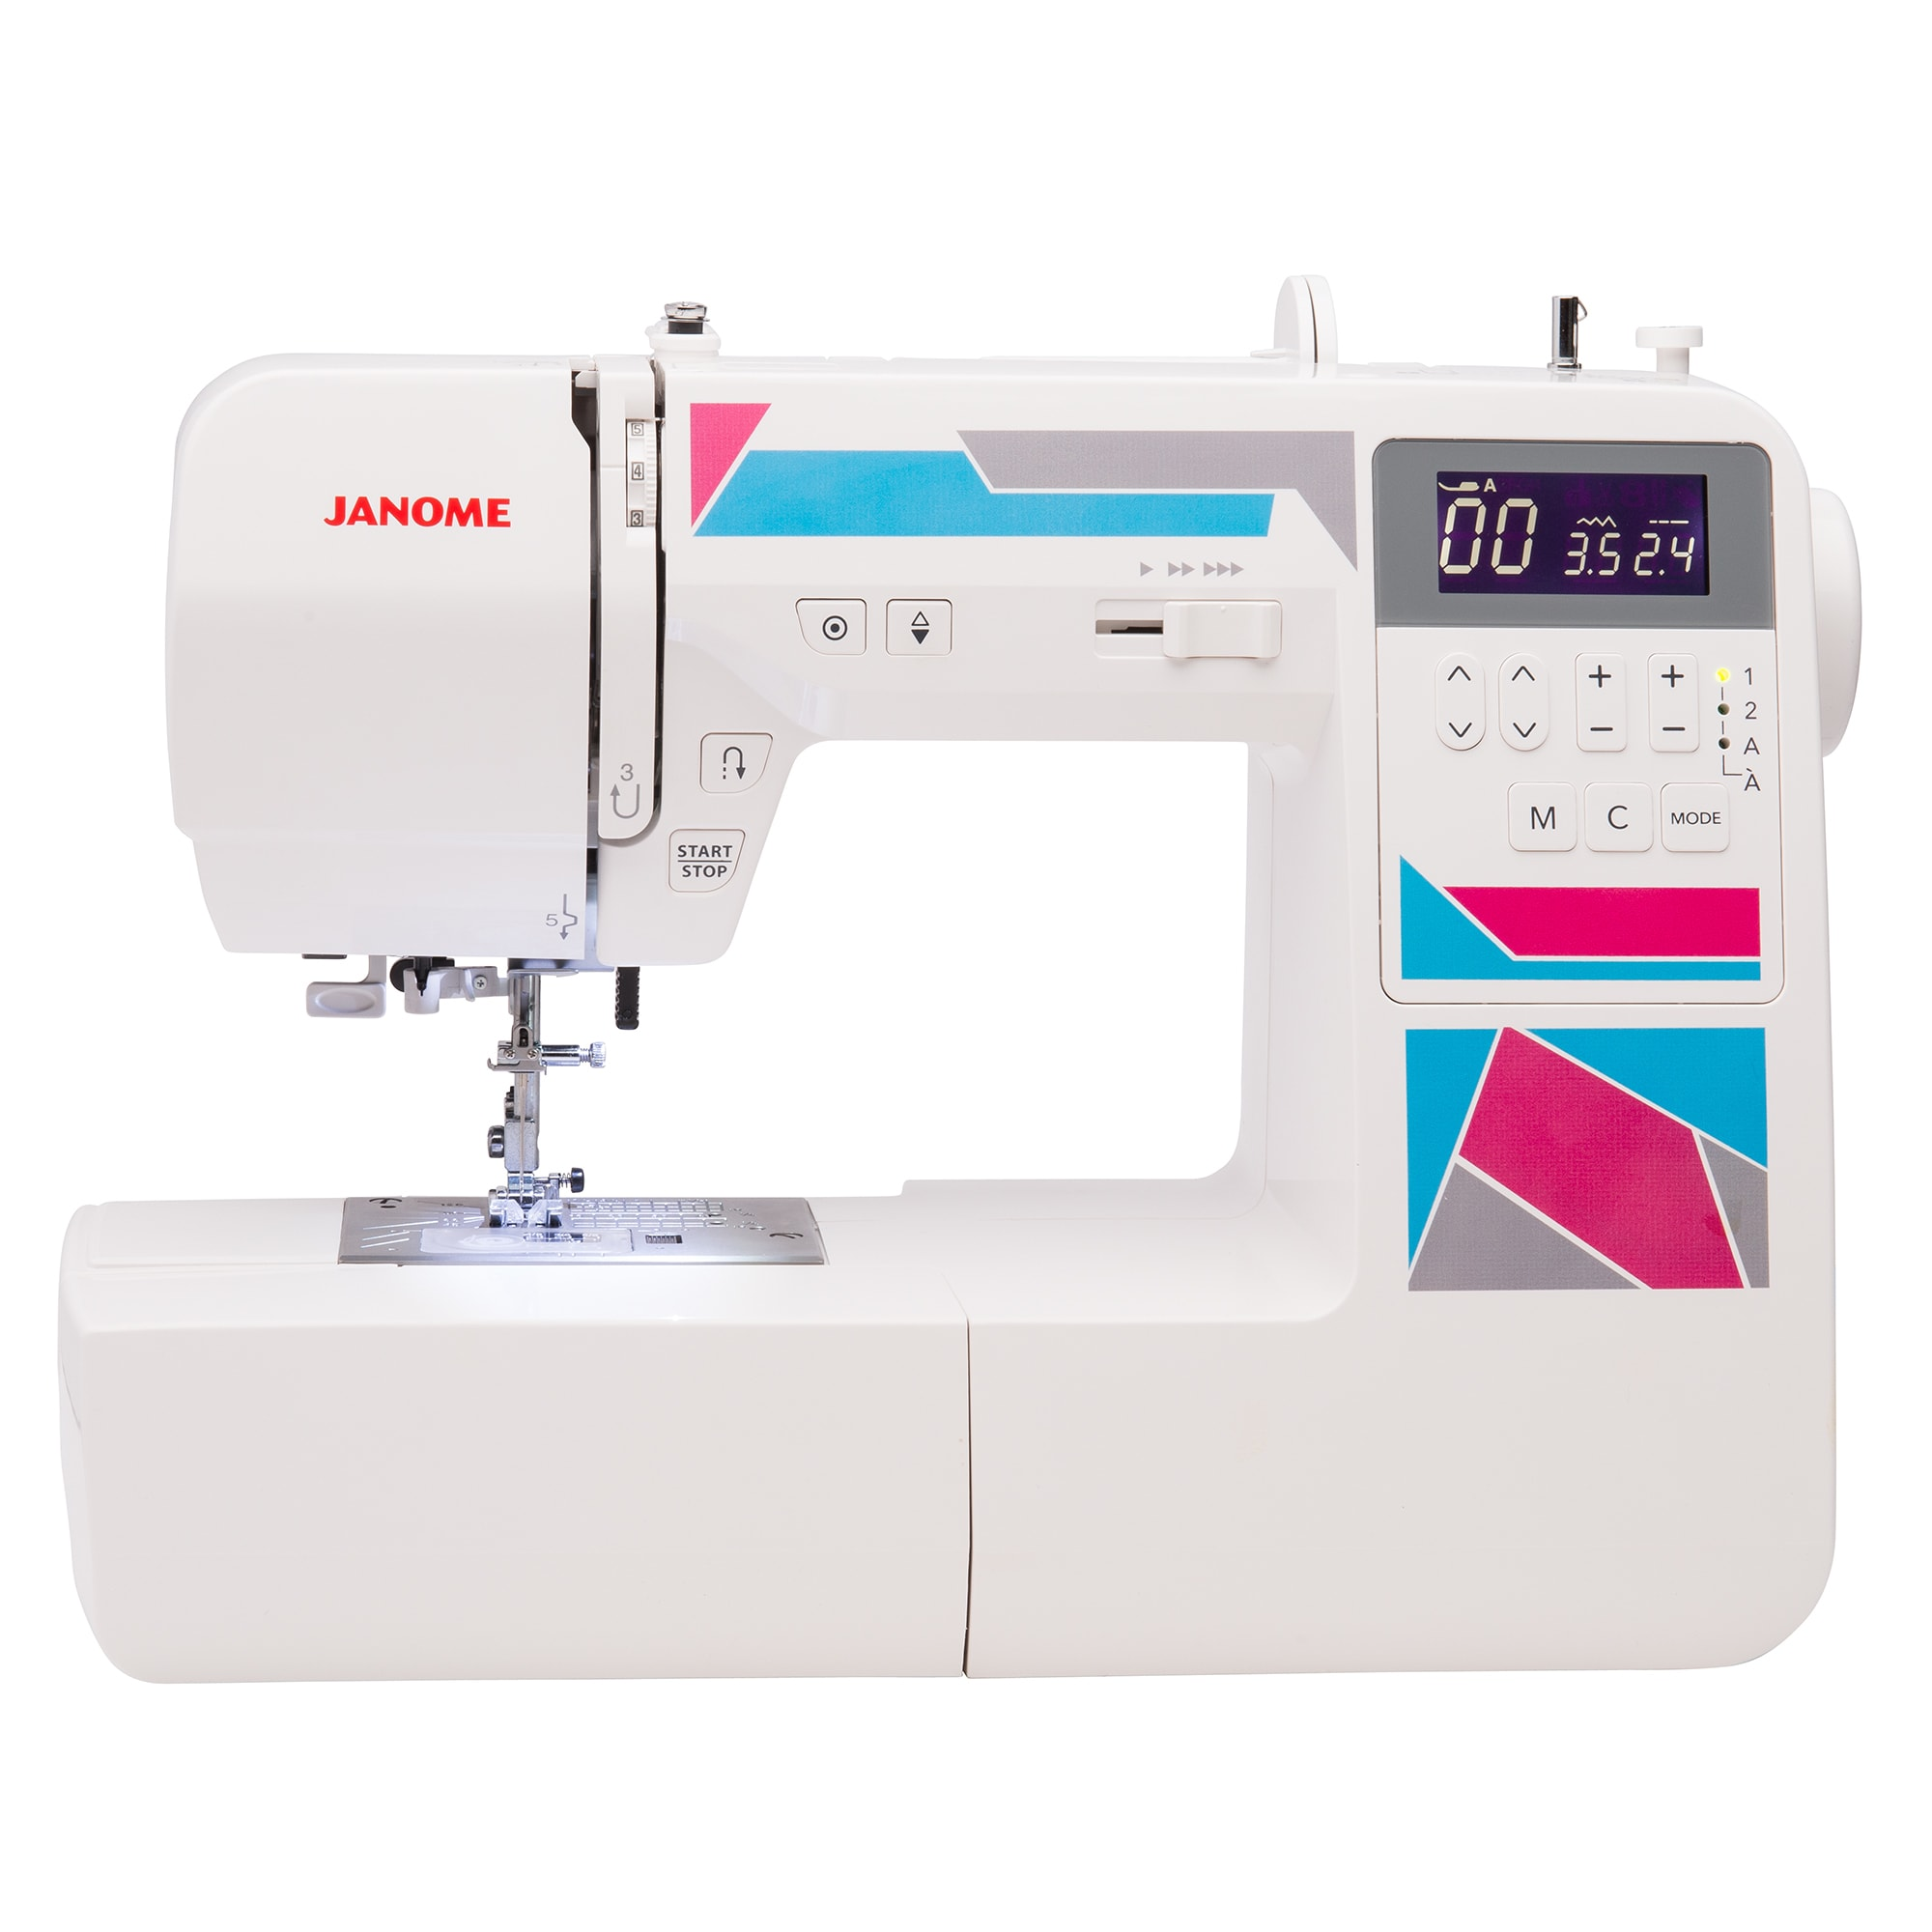 makes janome me quilt happy of best machine image reviews sewing quilting